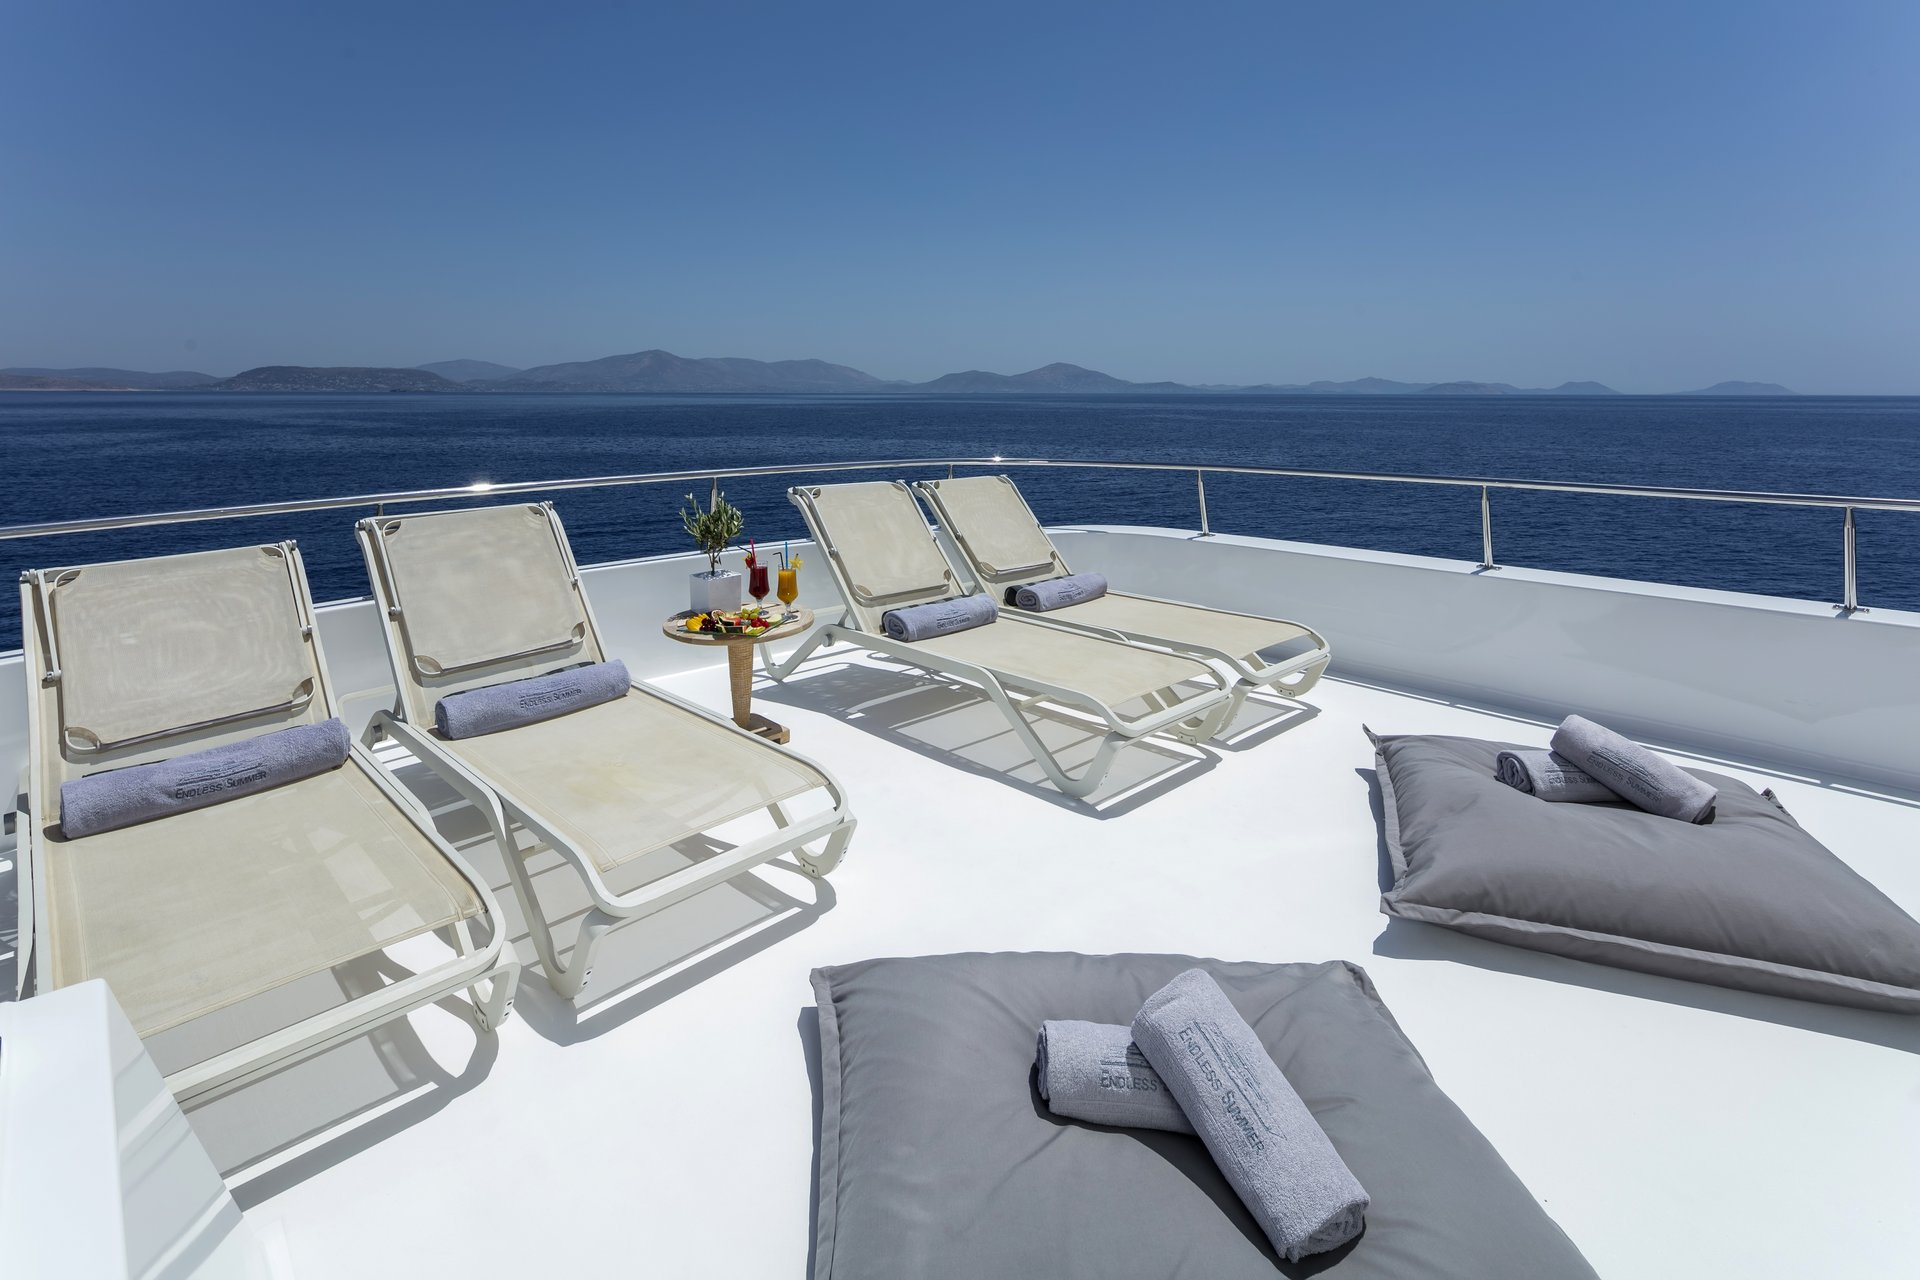 m/y endless summer yacht for charter sun deck